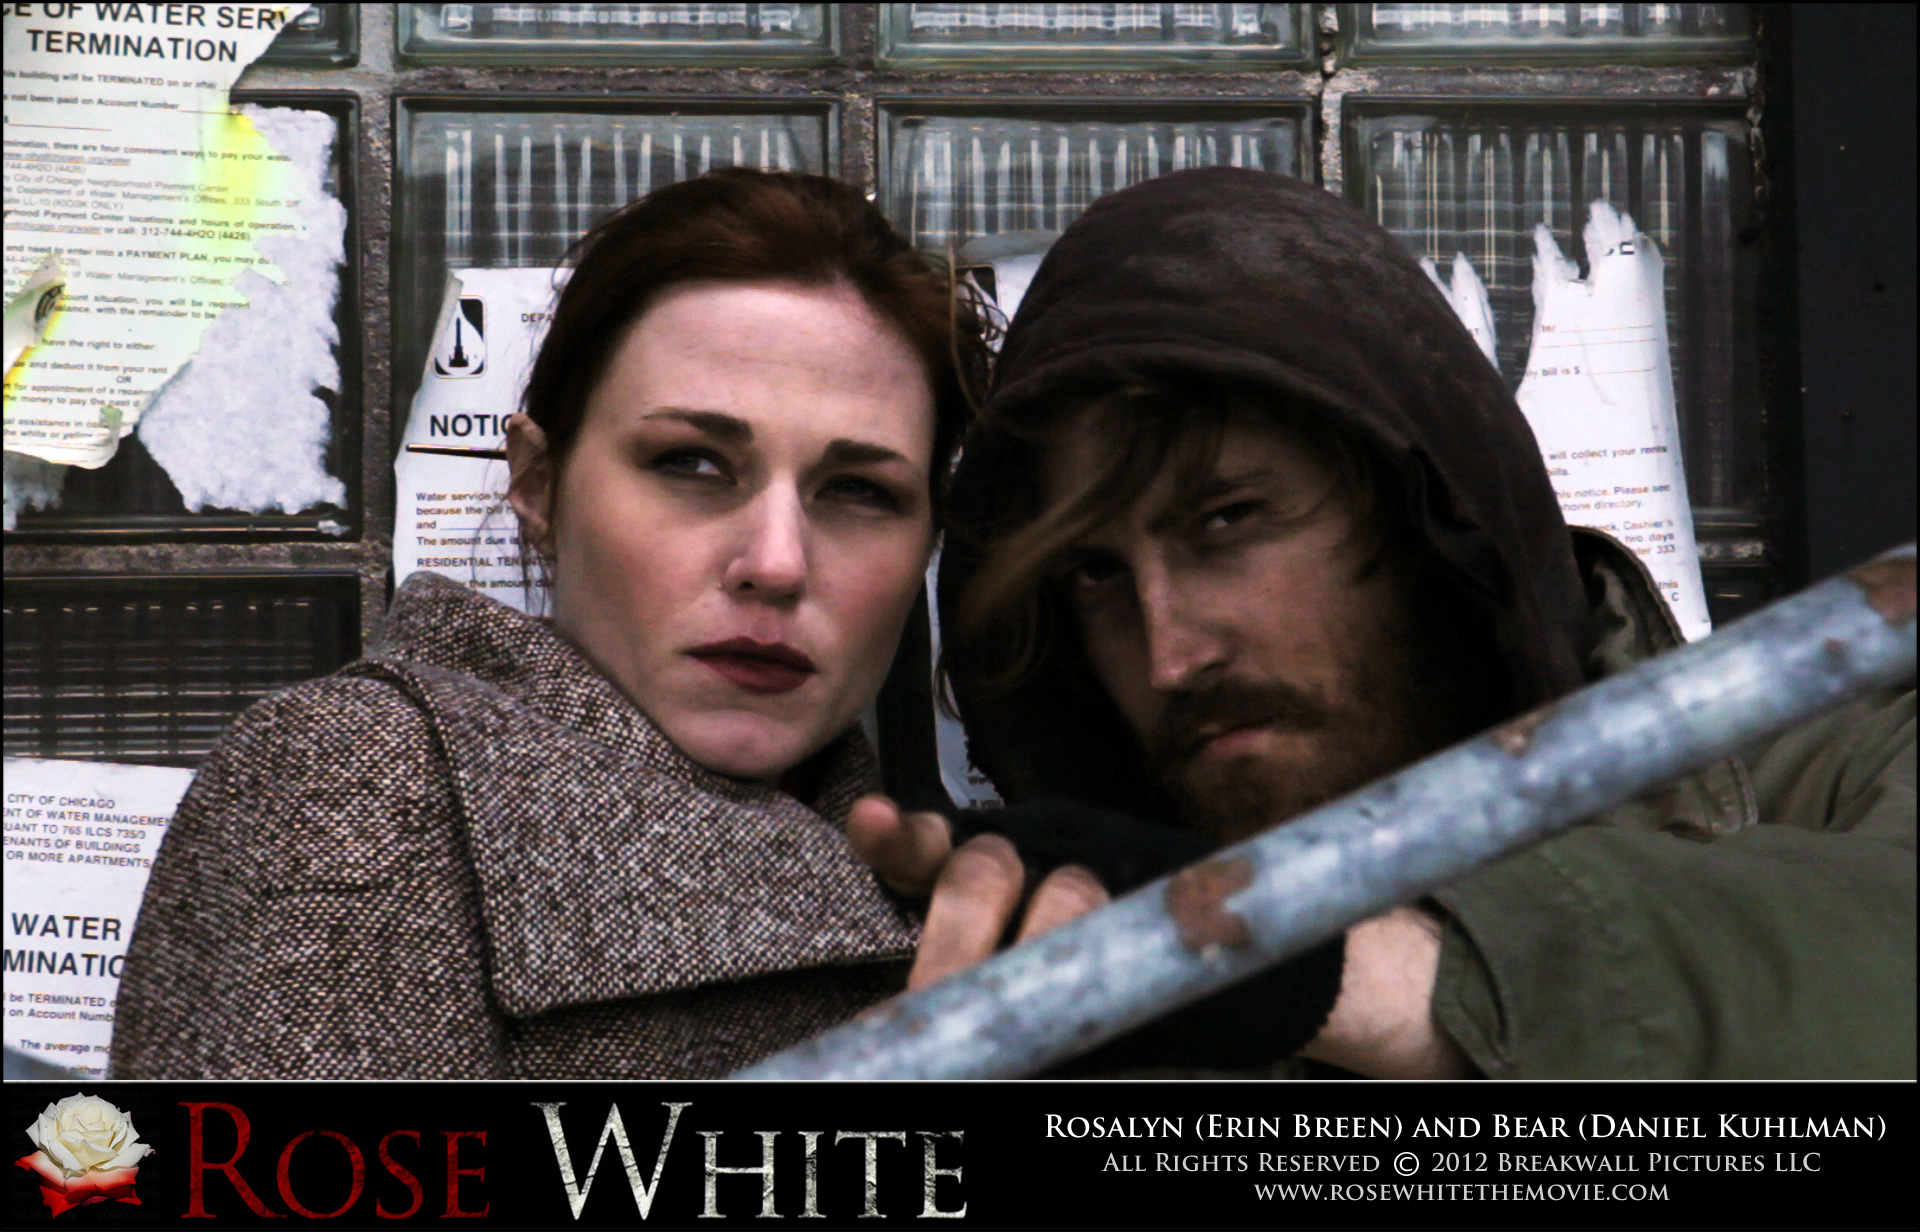 Example Rose White - Press Photo - Rosalyn and Bear.jpg